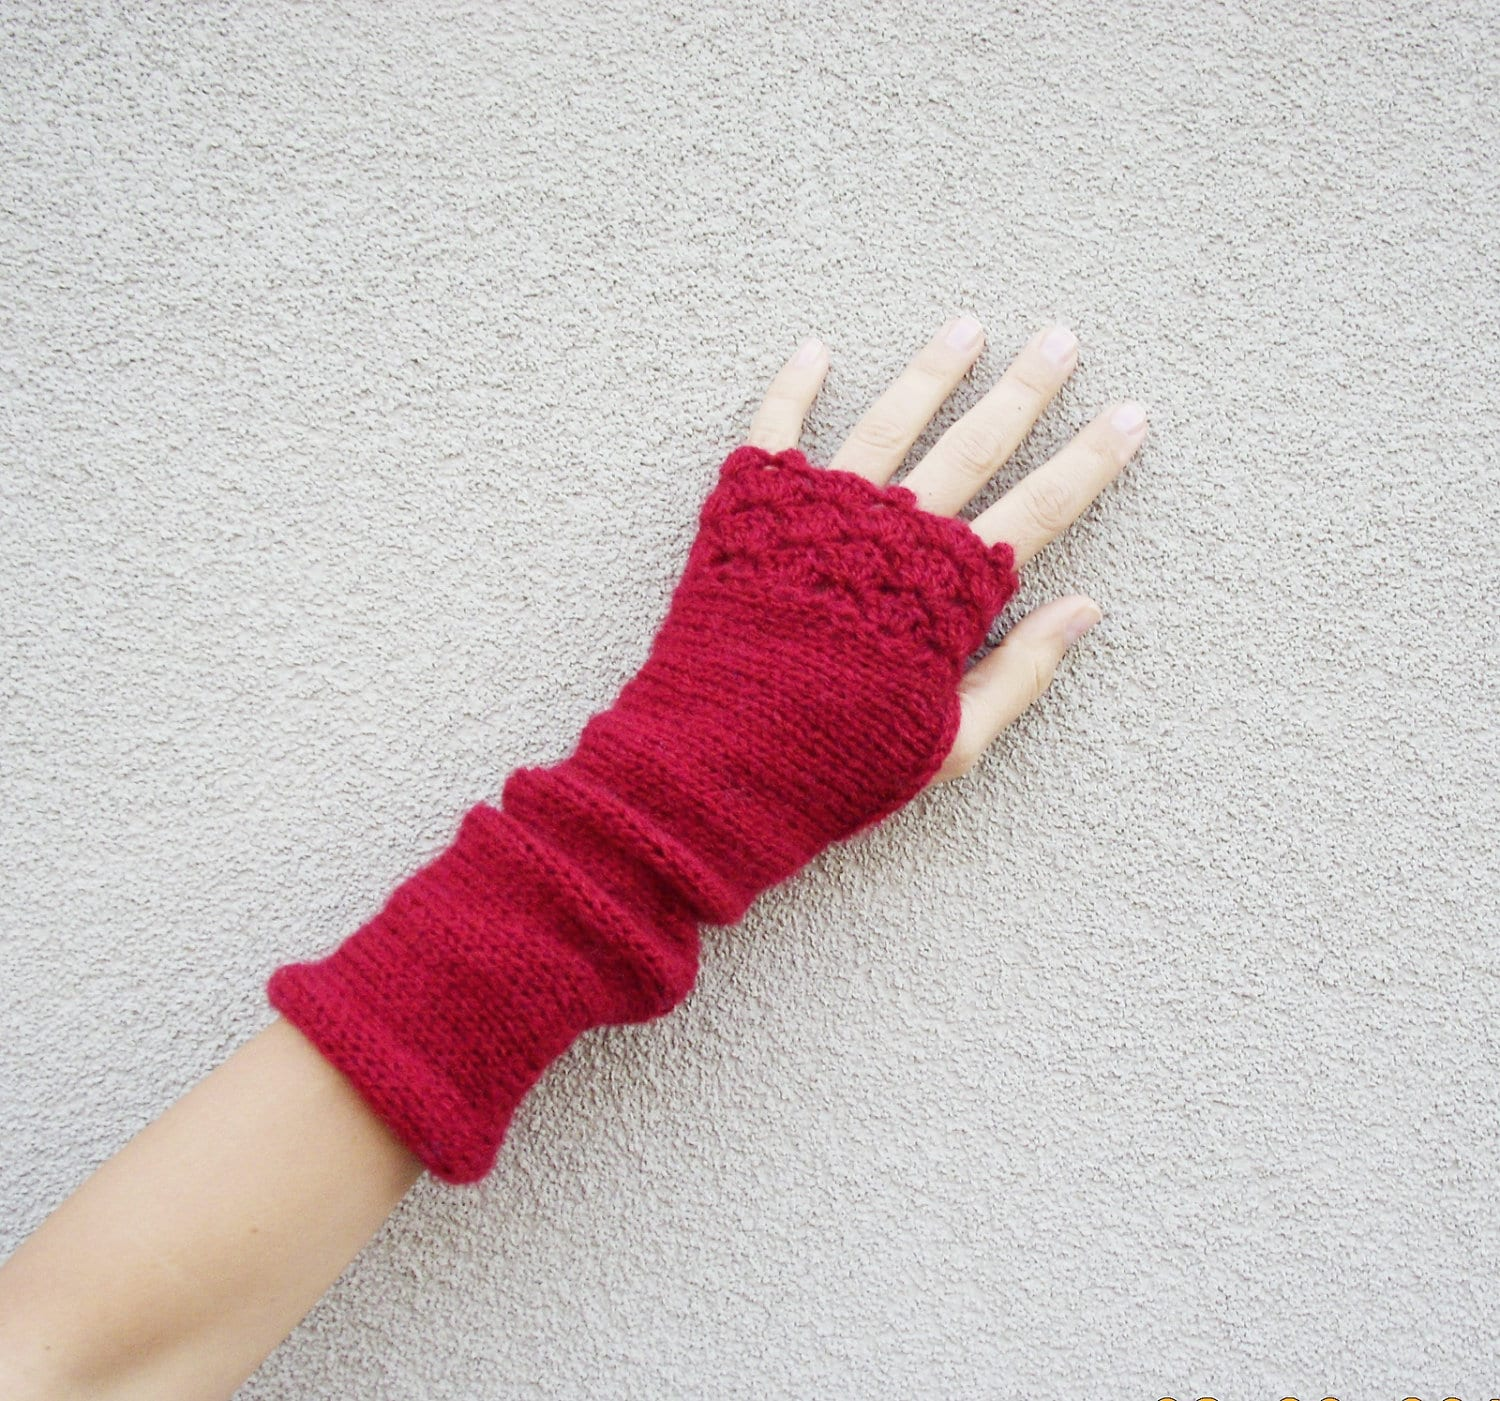 Knitted mittens in red, warm, knitted, crochet